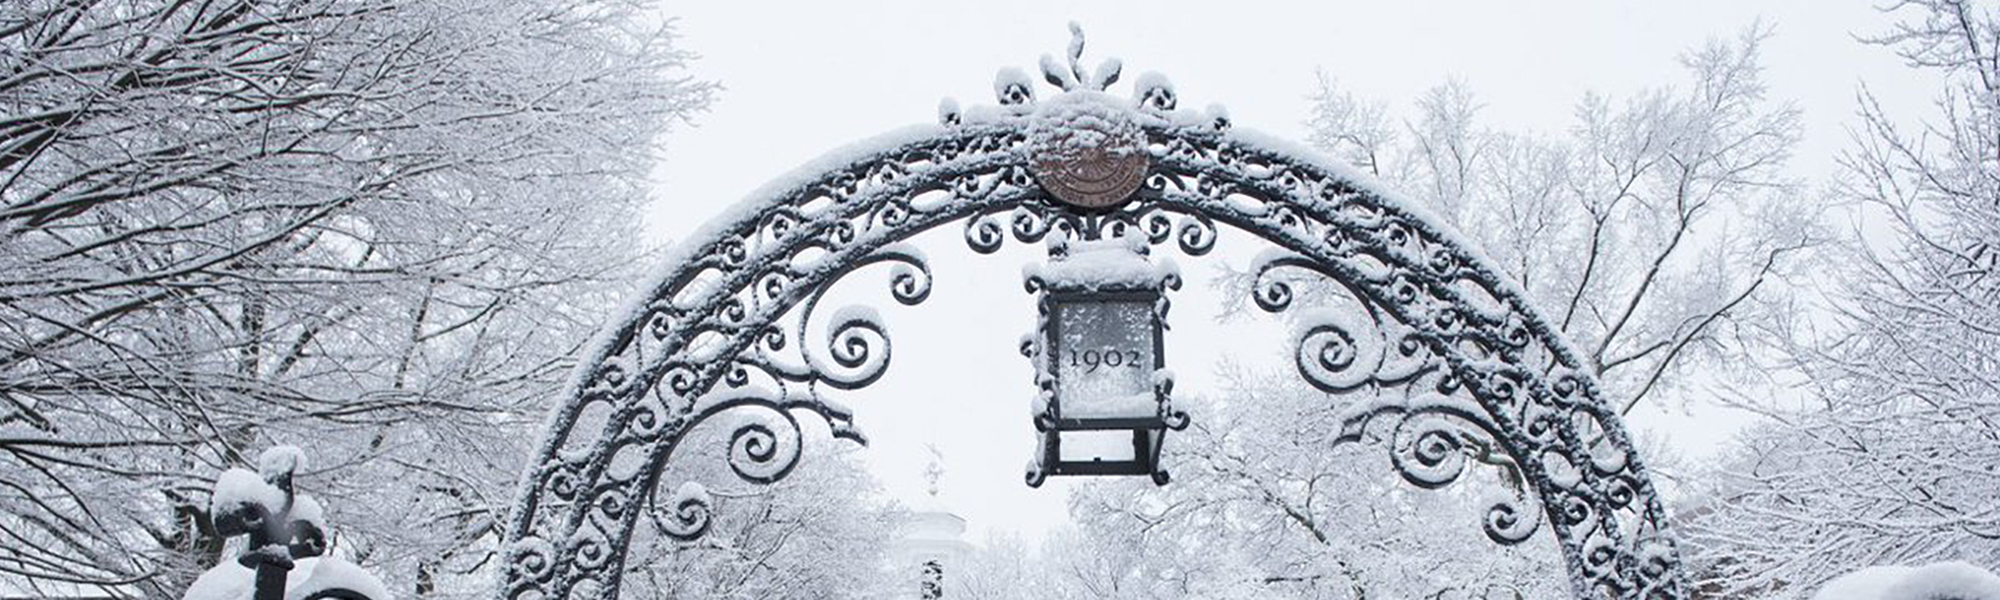 New Brunswick gate in snow